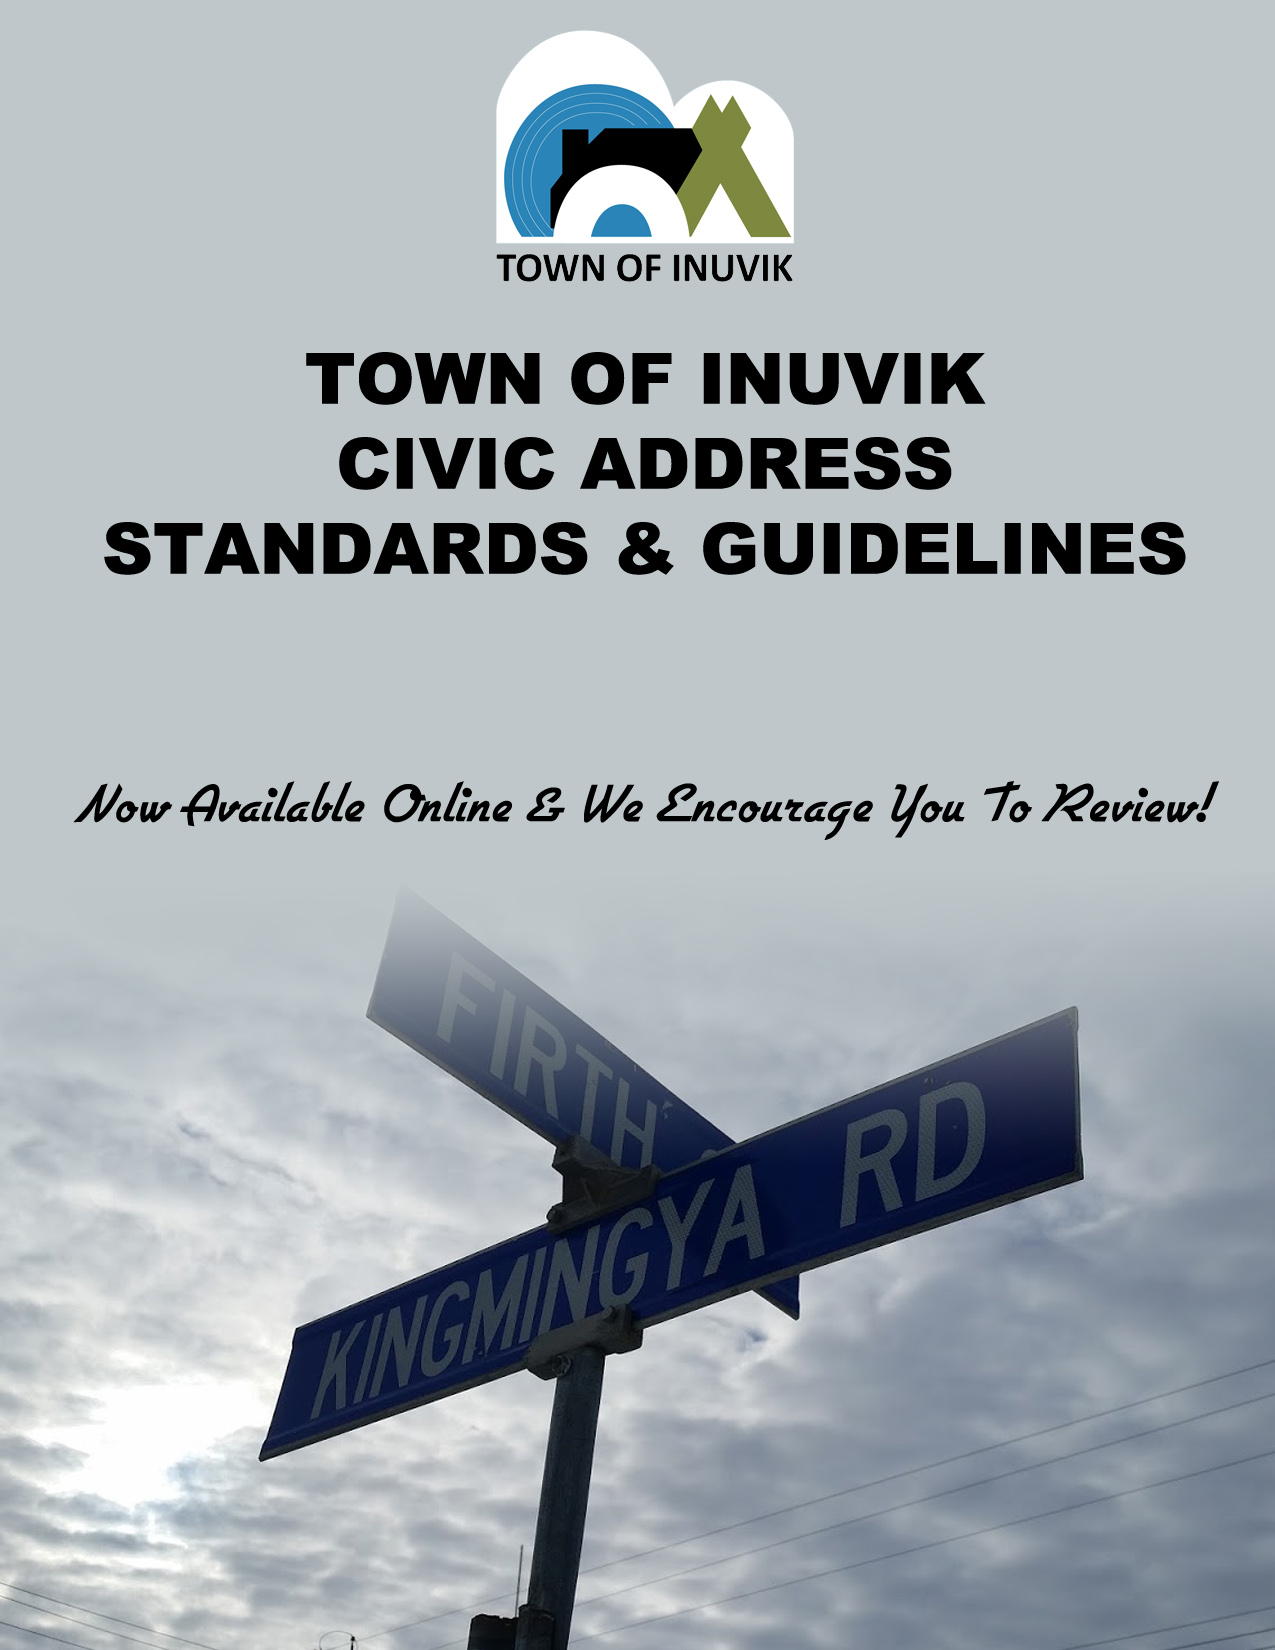 TOWN OF INUVIK CIVIC ADDRESS STANDARDS & GUIDELINES